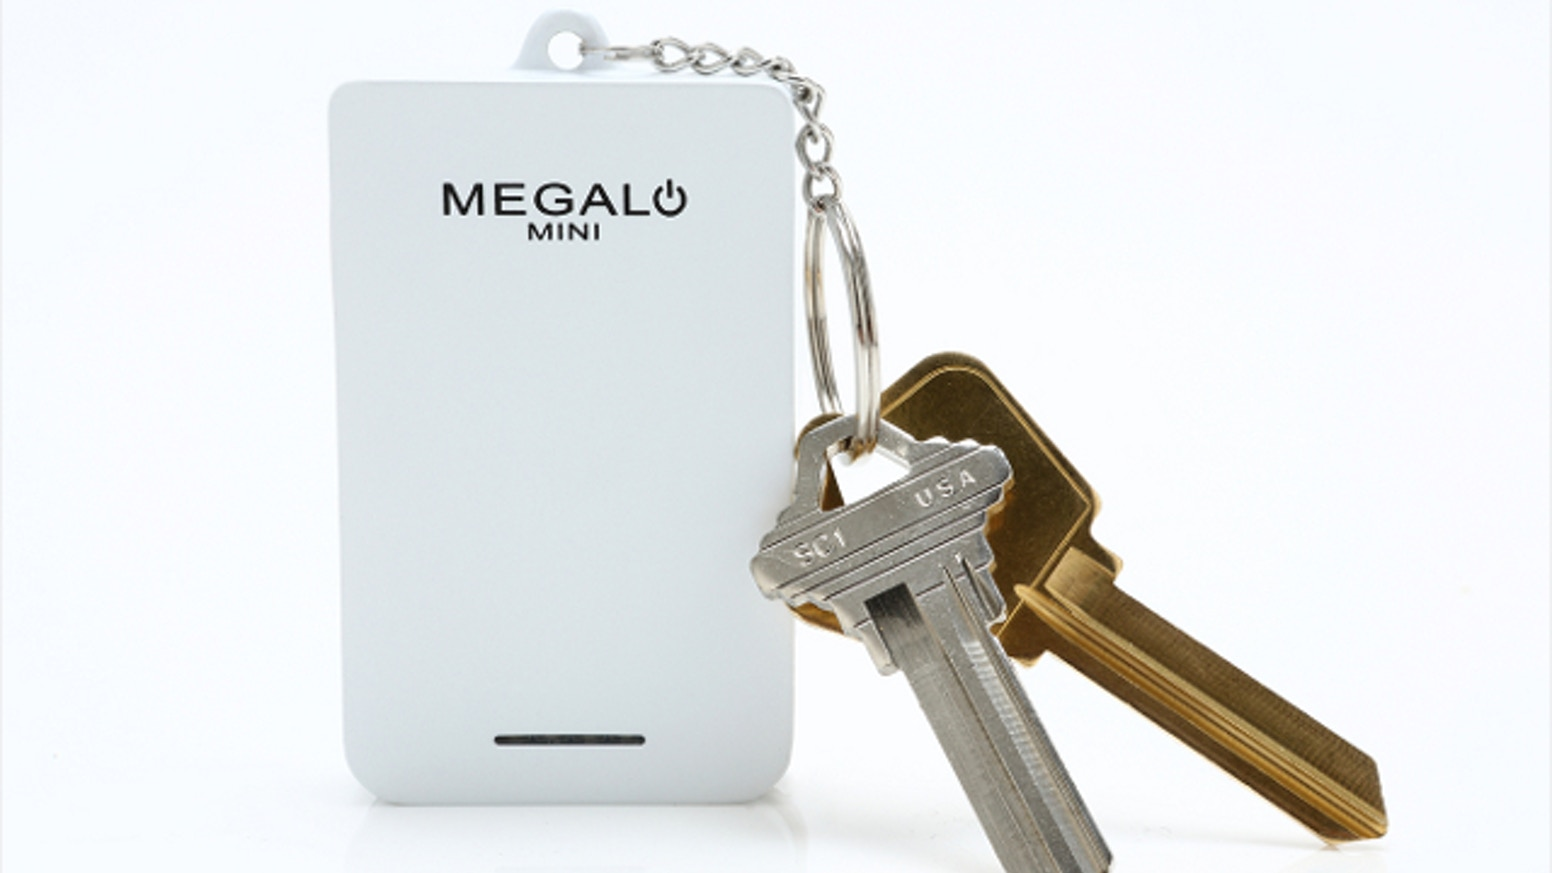 Megalo Mini is the smallest portable charger with a capacity of 1400 mAh - powerful enough to charge your smartphone for the whole day.